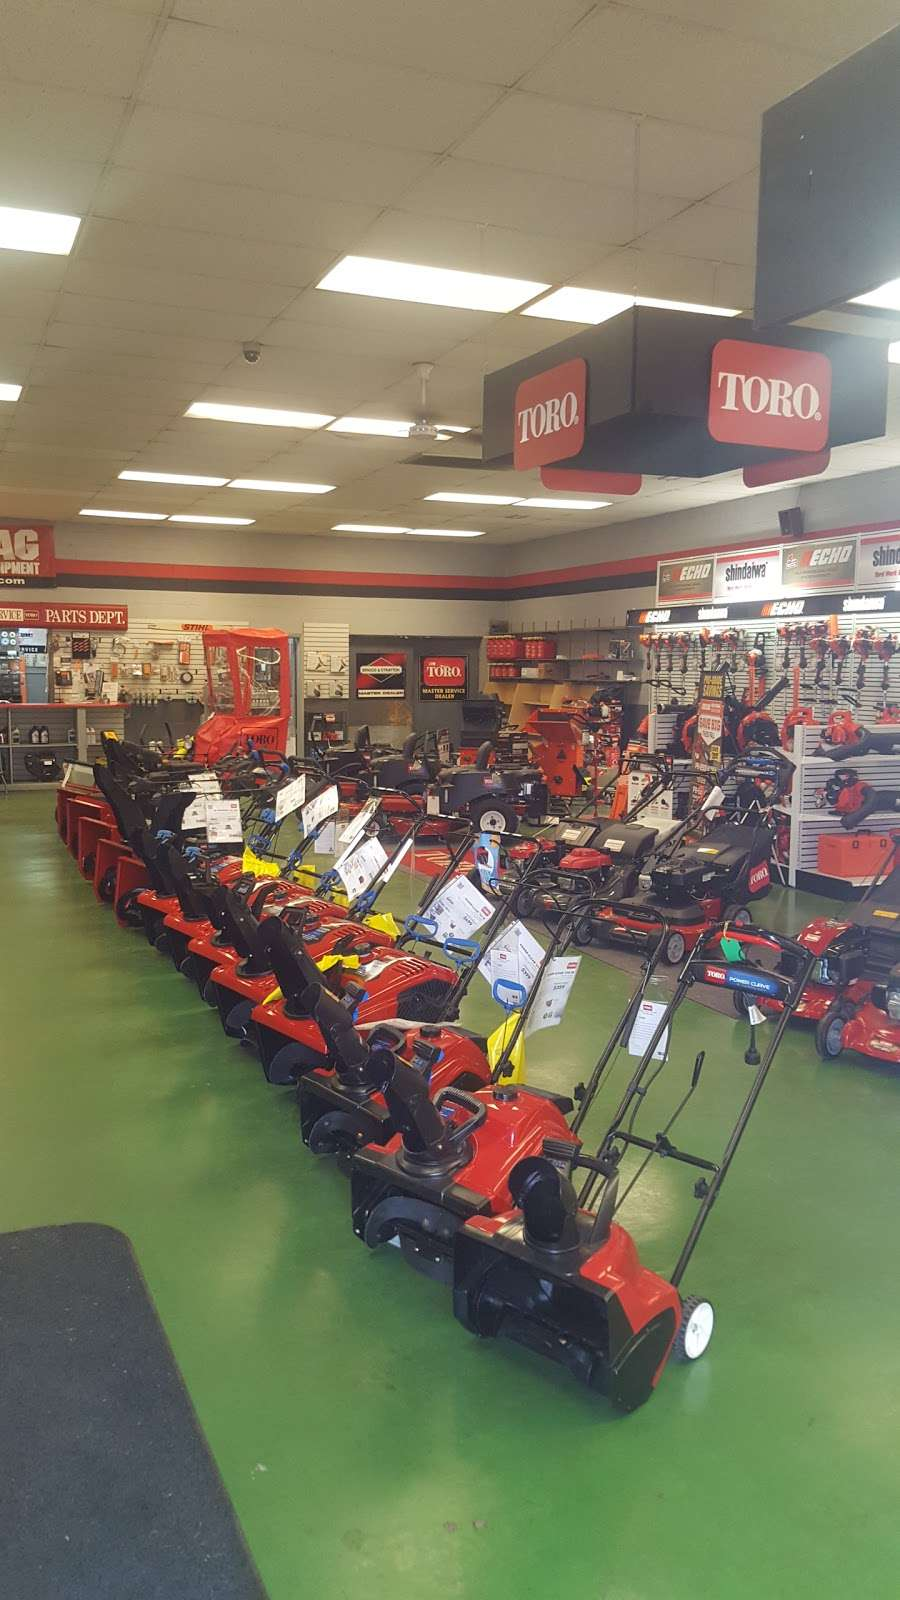 Terpstras Sales, Service & Rental - store  | Photo 9 of 10 | Address: 1235 E 45th Ave, Griffith, IN 46319, USA | Phone: (219) 838-3600